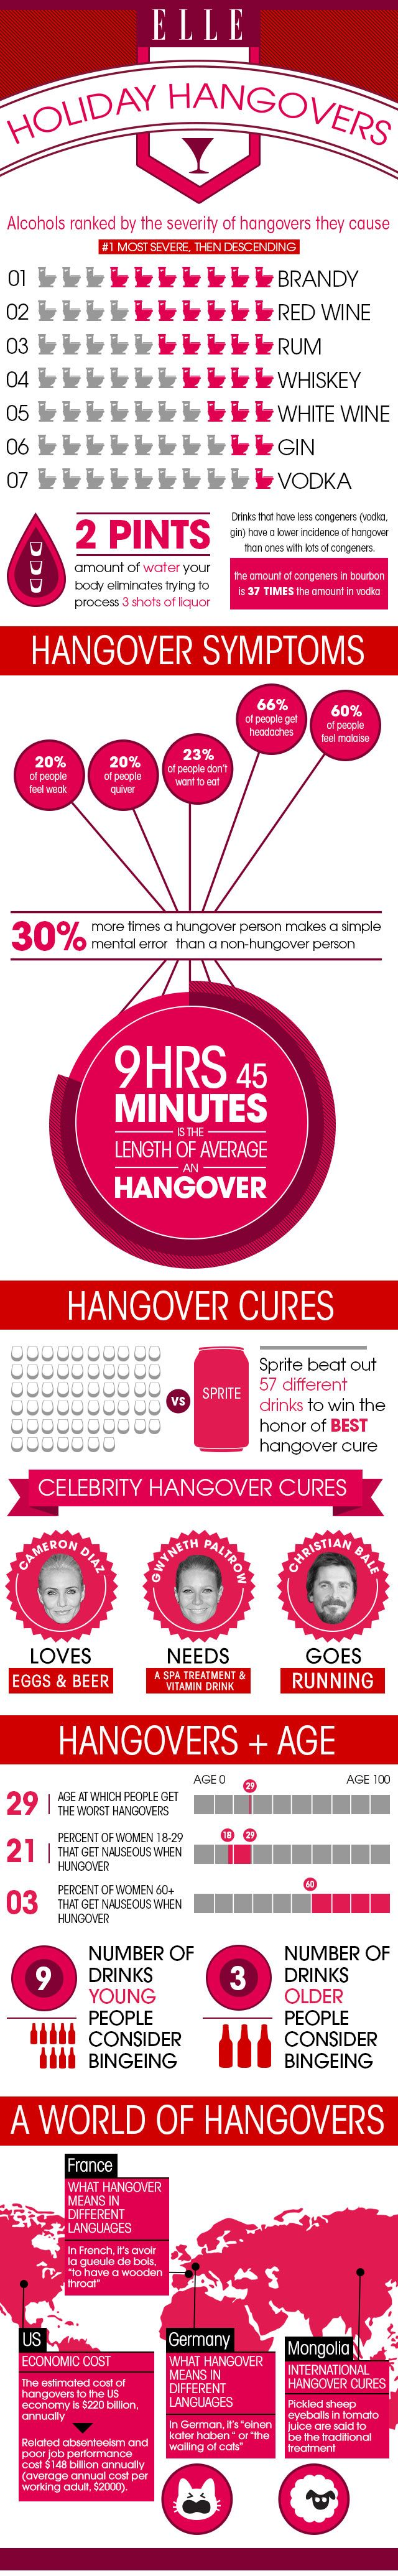 Everything you need to know about curing a hangover.